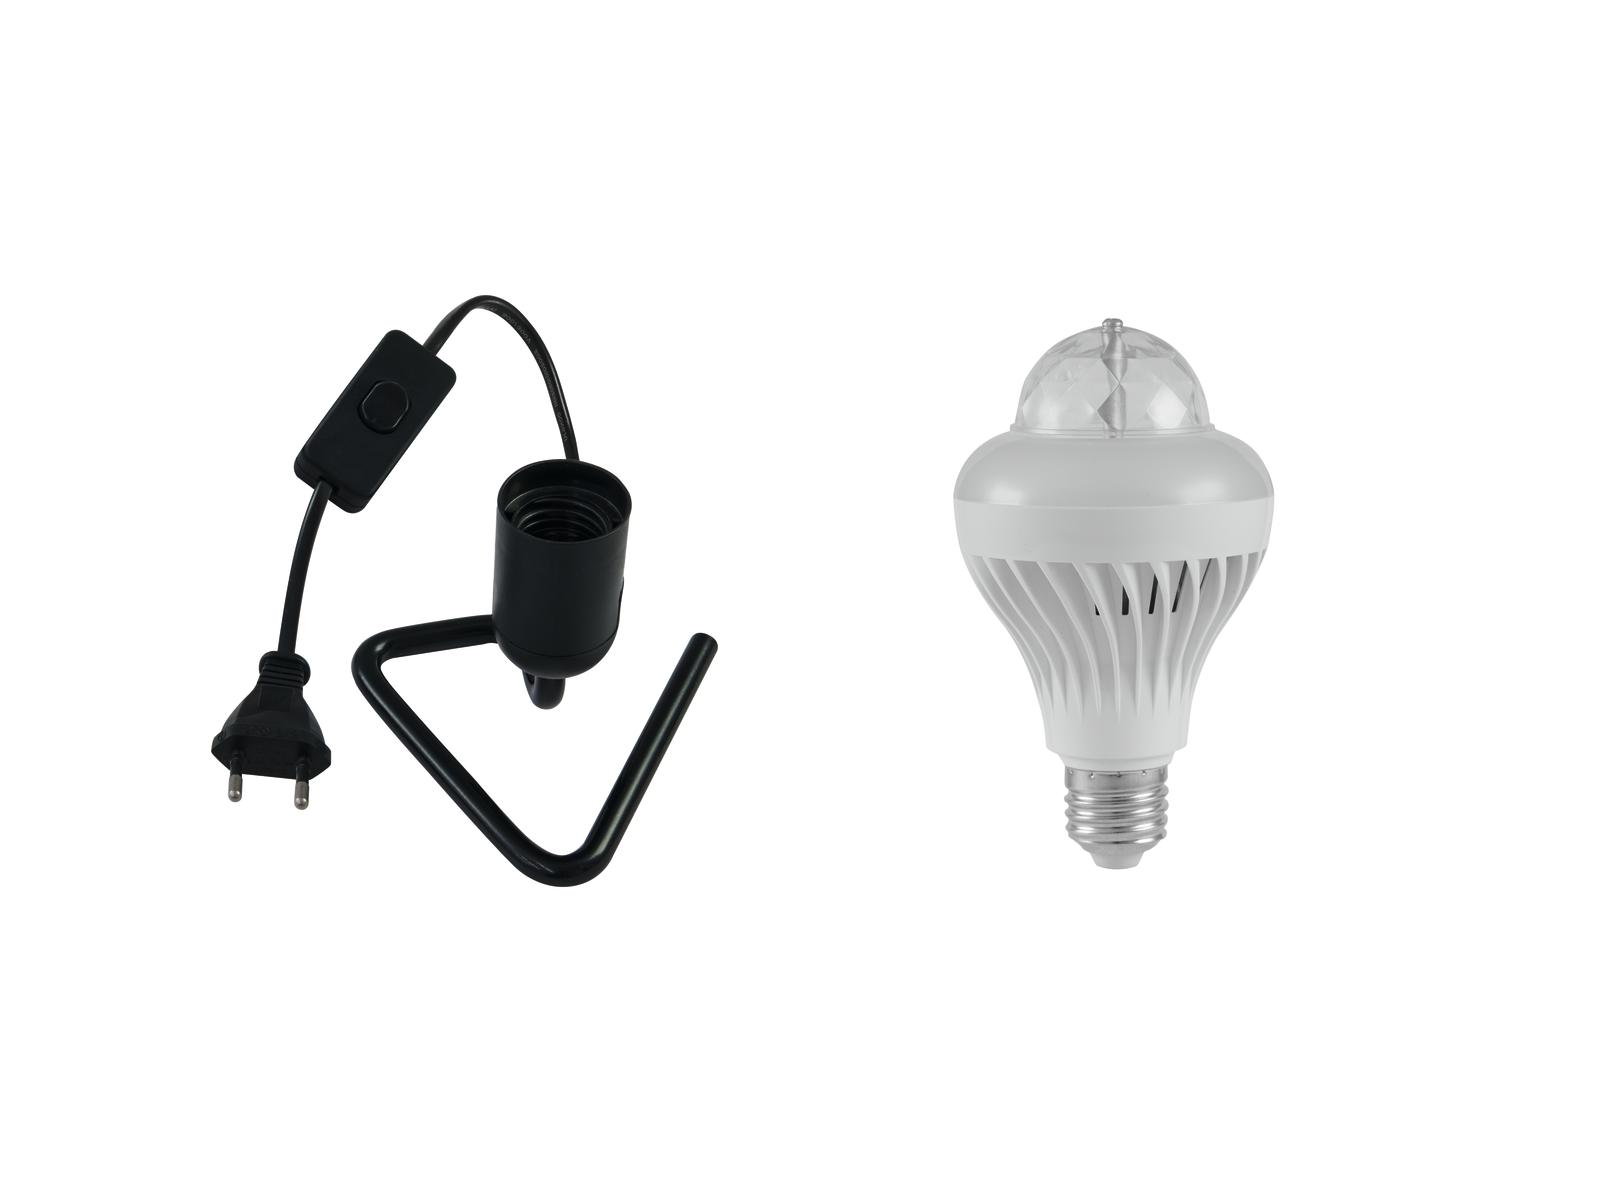 EUROLITE LED di Set di BCL-1 + Triangolo di base nero